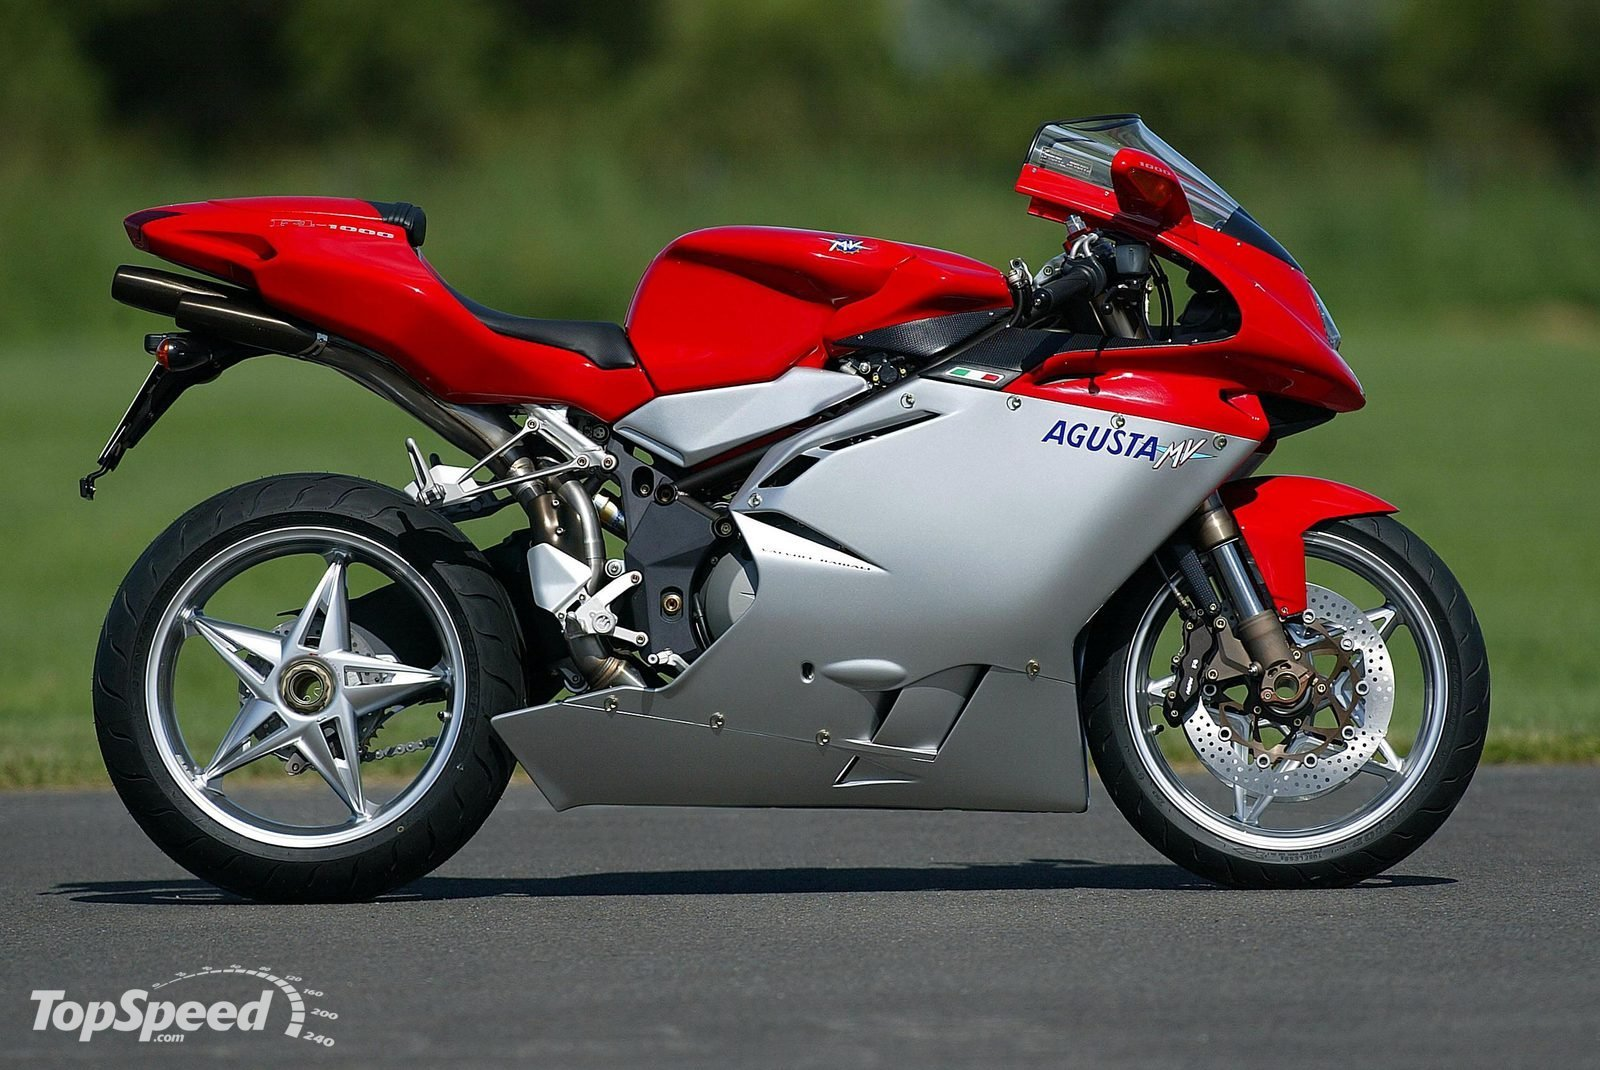 MV Agusta F4 1000 S 2006 images #113596